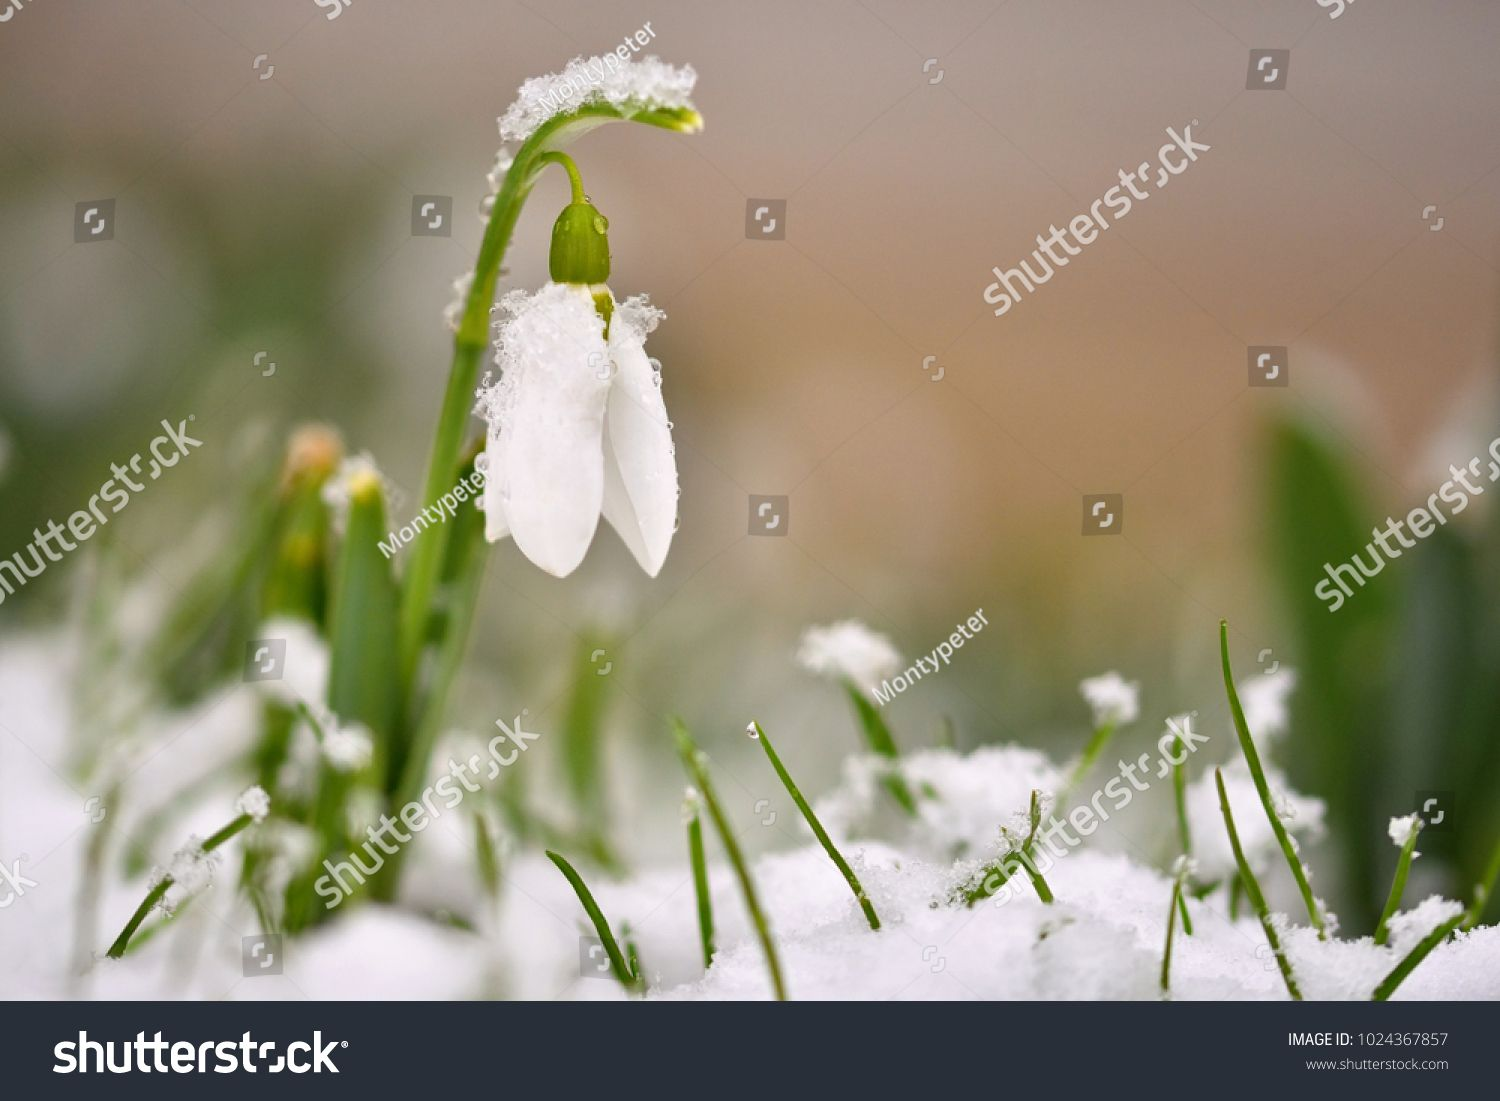 Snowdrops Spring Flowers Beautifully Blooming In The Grass At Sunset Delicate Snowdrop Flower Is One Of The Spring Symbols Ama In 2020 Spring Flowers Flowers Bloom